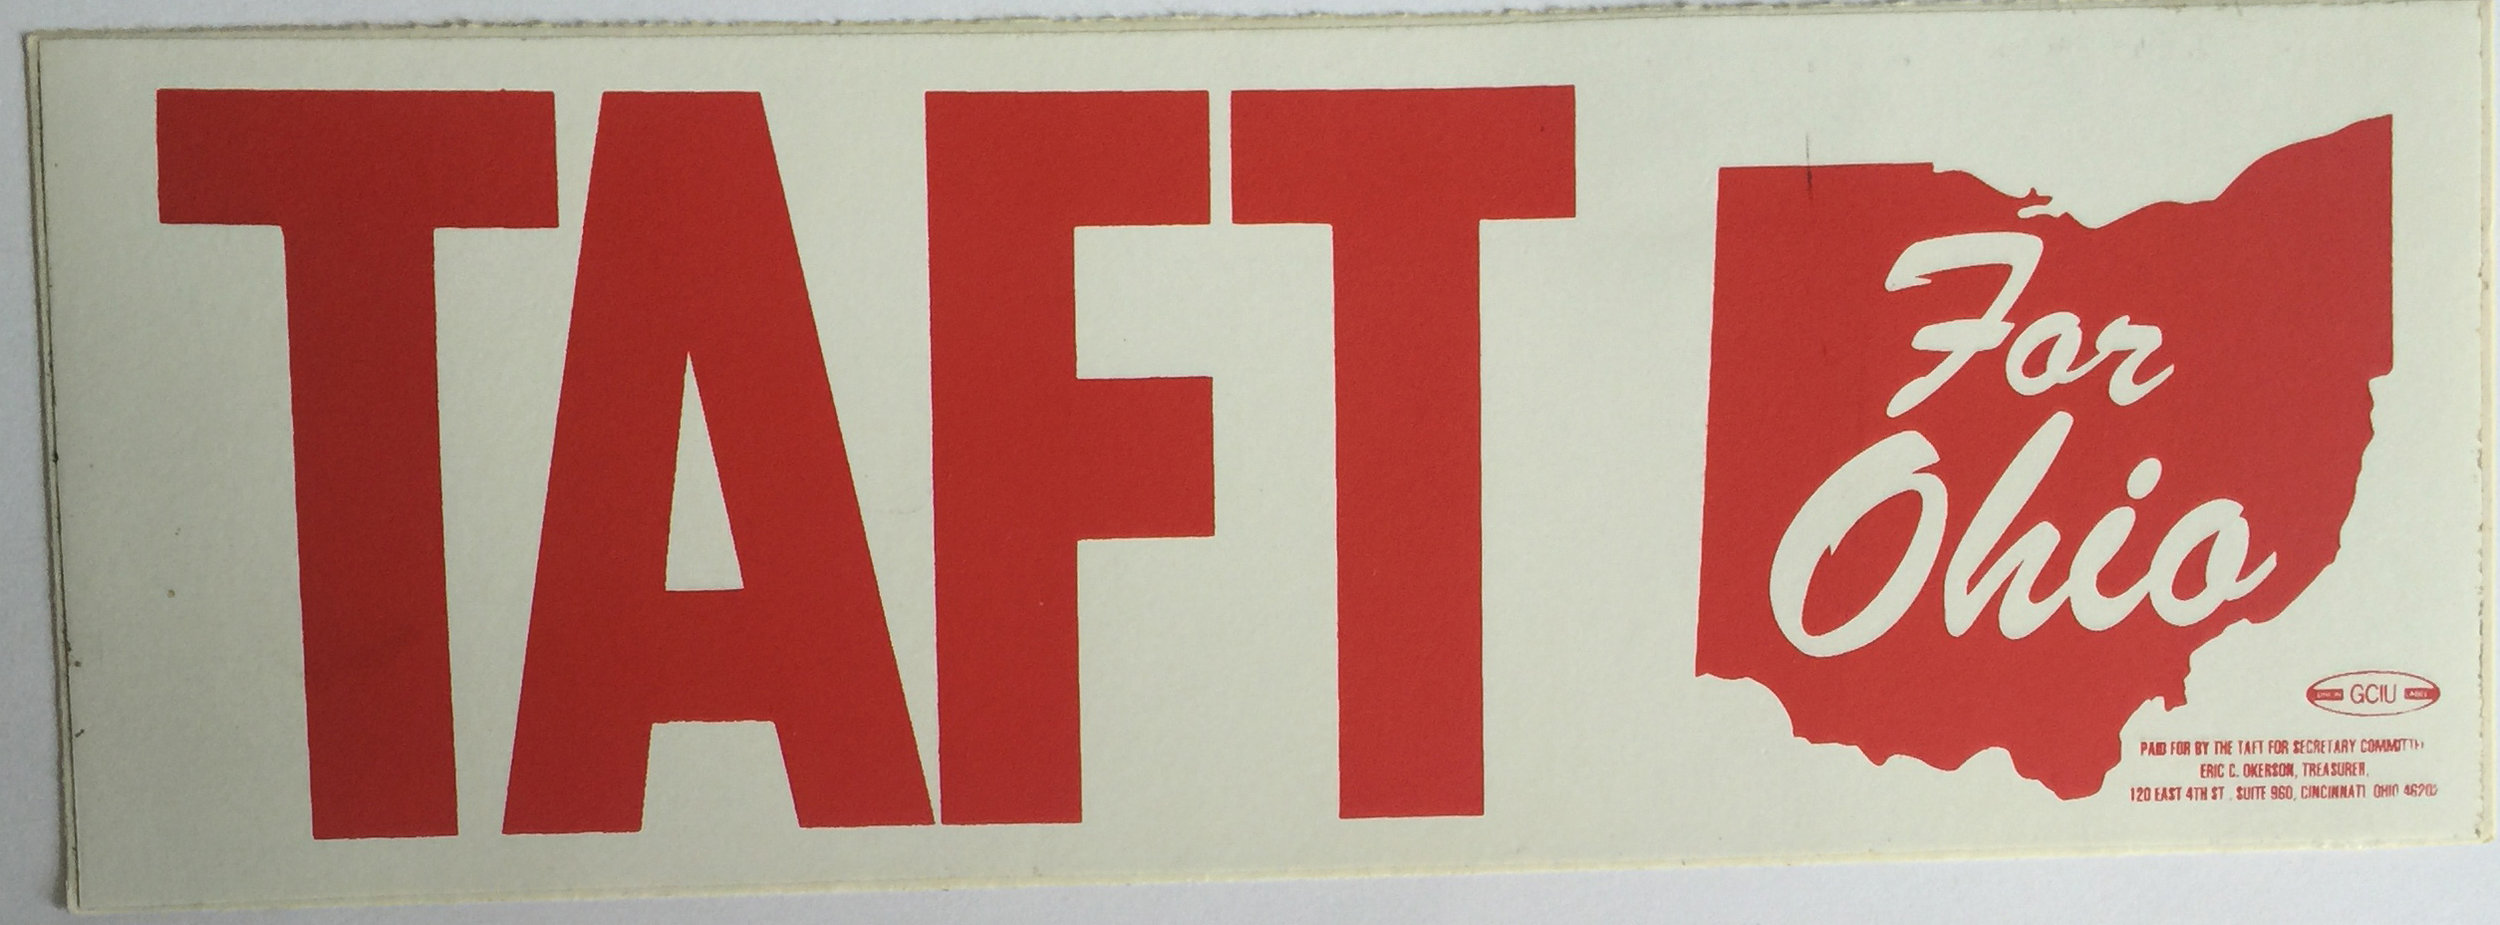 STICKER-uss TAFTjr 5.jpg